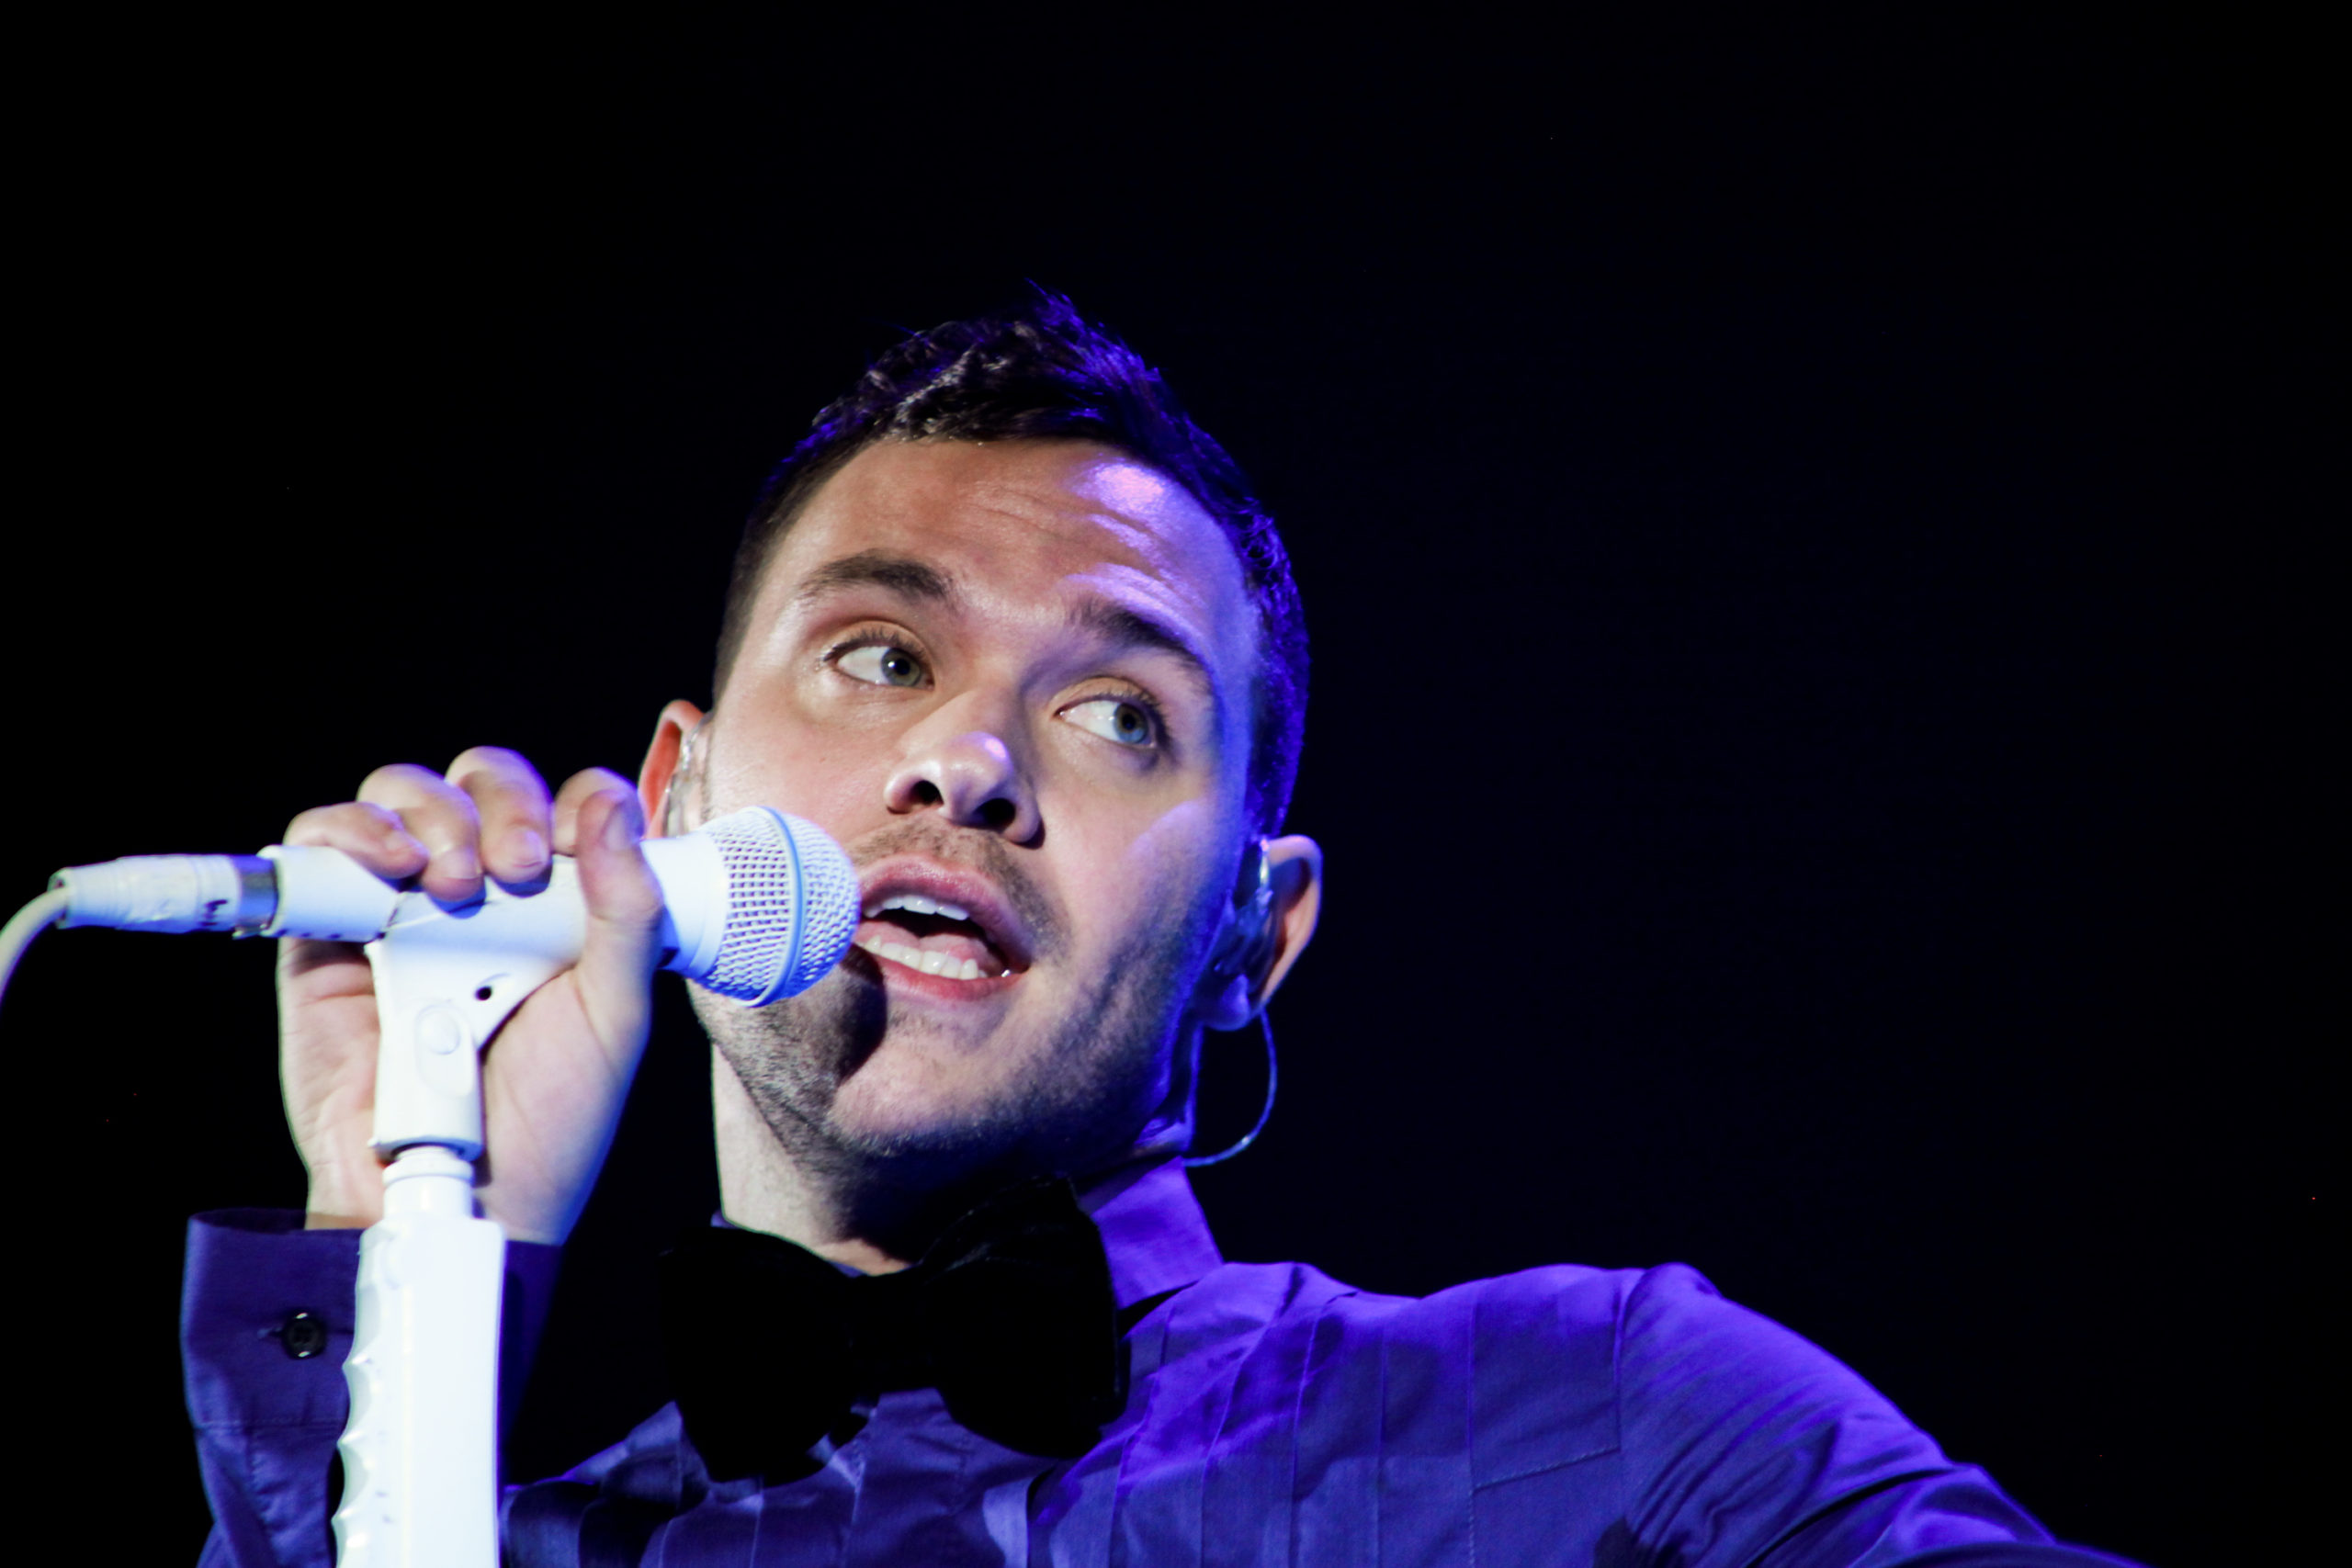 Will Young performs on stage at Hammersmith Apollo on November 21, 2009 in London, England.